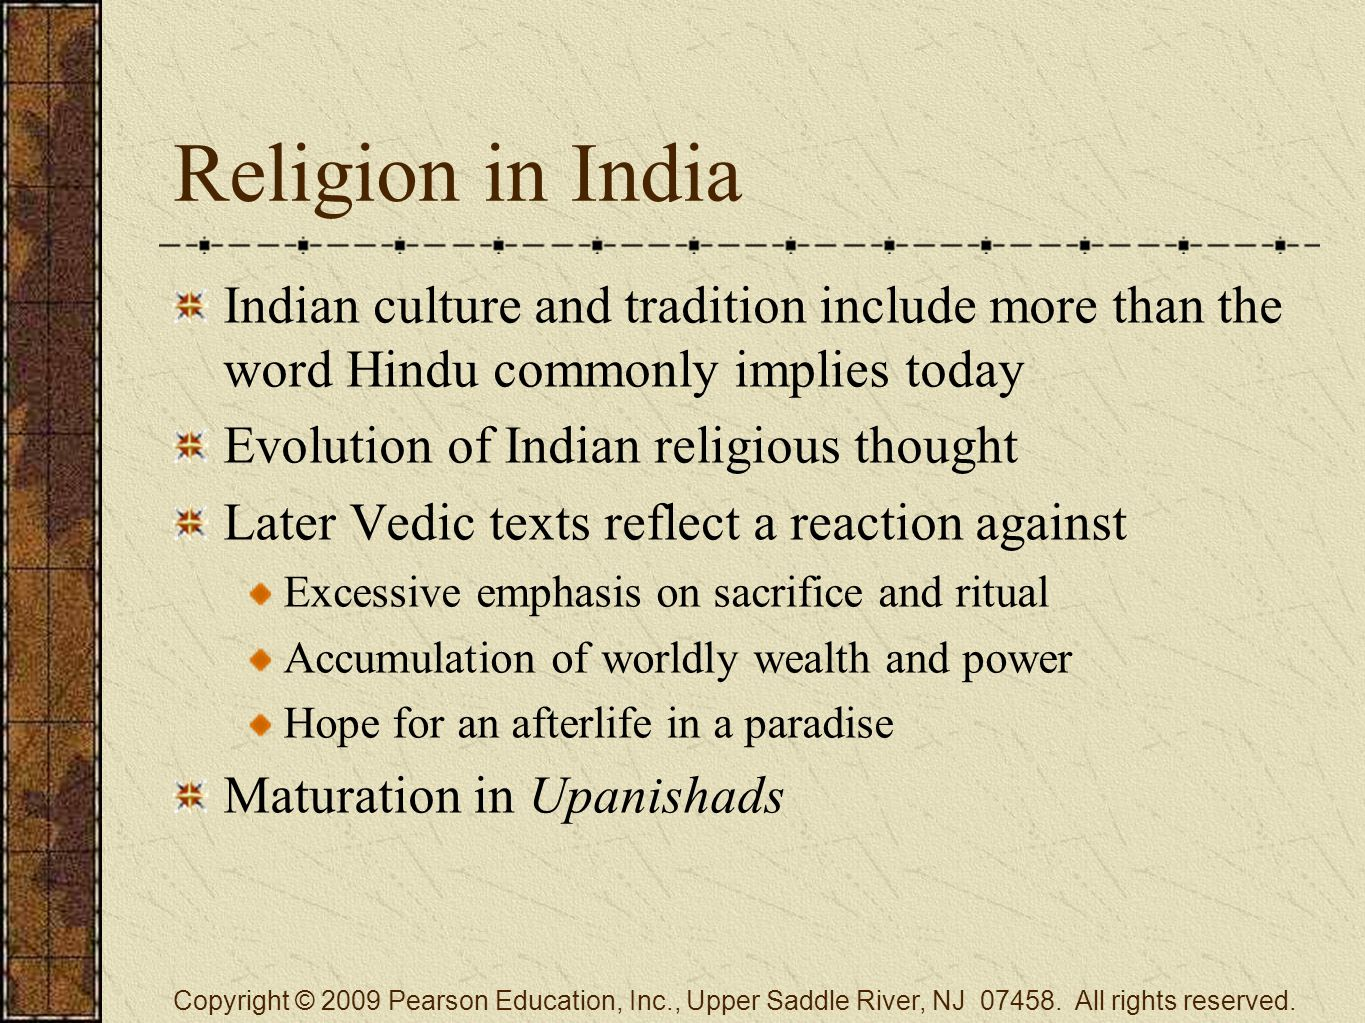 Religion in India Indian culture and tradition include more than the word Hindu commonly implies today Evolution of Indian religious thought Later Vedic texts reflect a reaction against Excessive emphasis on sacrifice and ritual Accumulation of worldly wealth and power Hope for an afterlife in a paradise Maturation in Upanishads Copyright © 2009 Pearson Education, Inc., Upper Saddle River, NJ 07458.